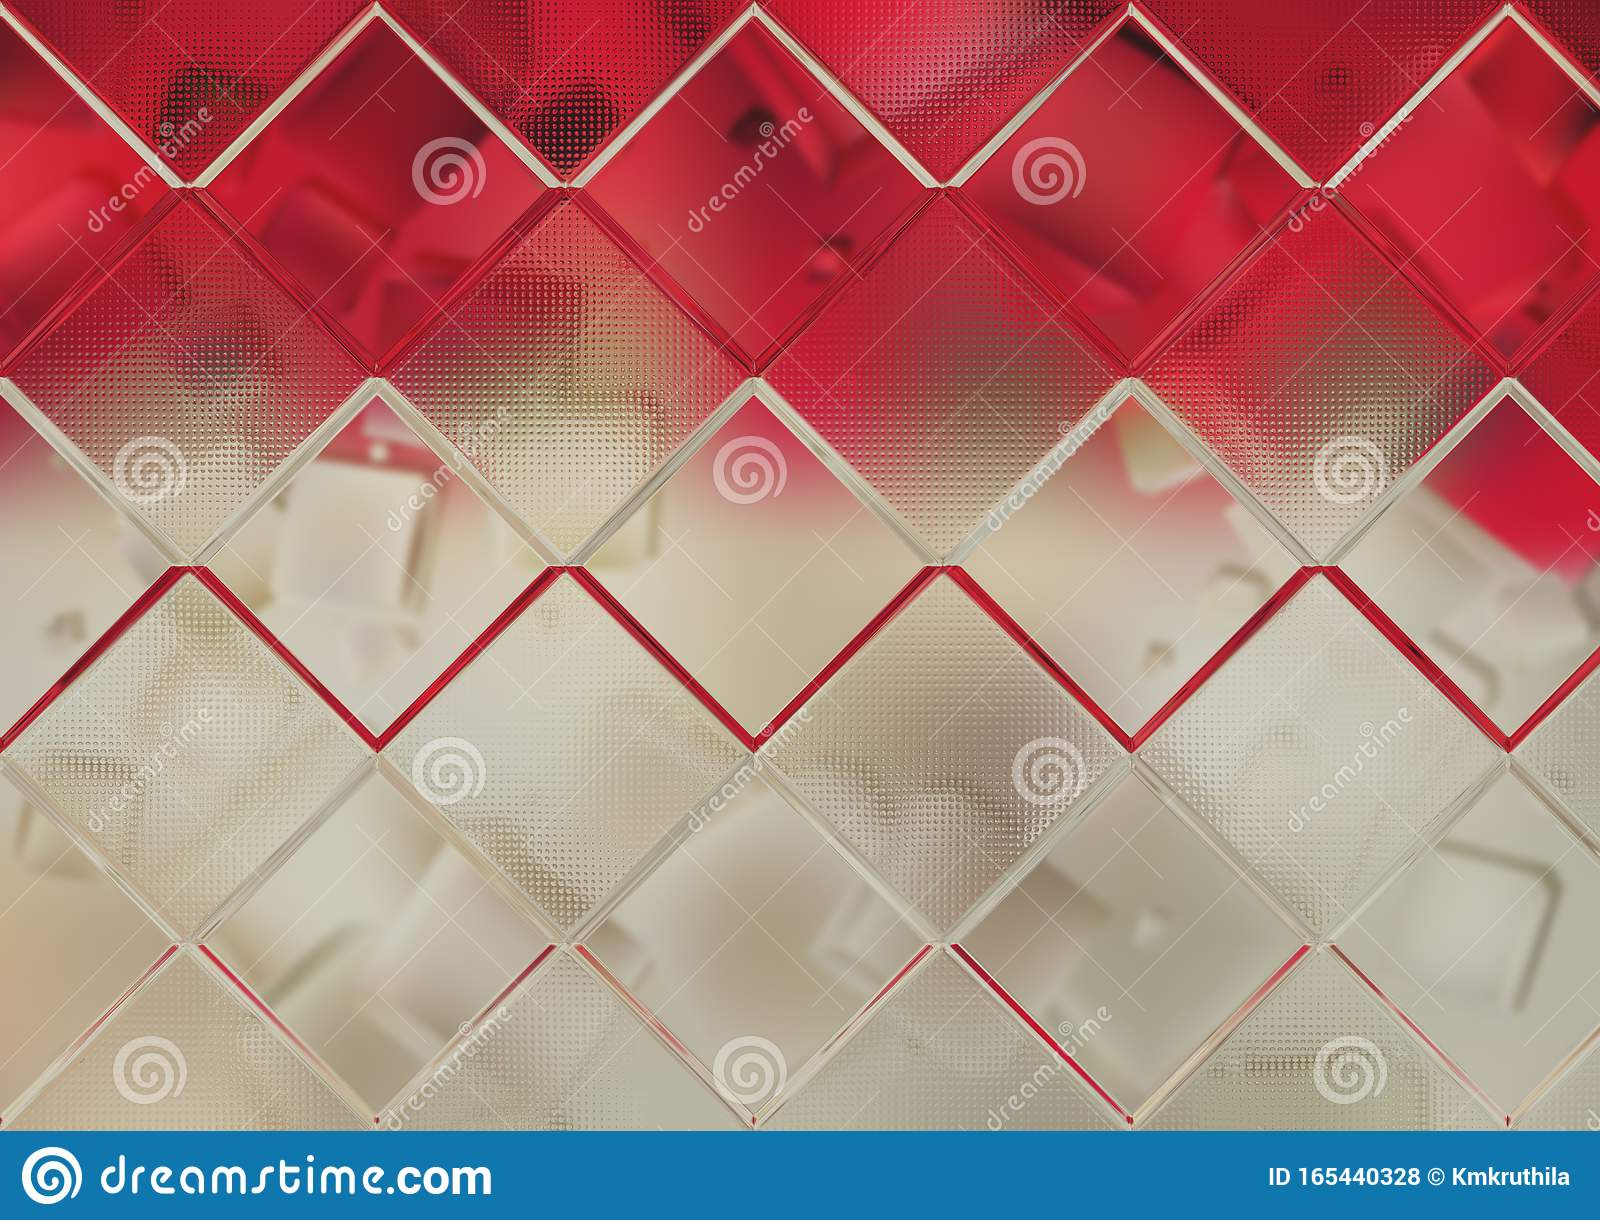 Red And Brown Geometric Square Background Stock Photo Image Of Quadrilateral Graphic 165440328